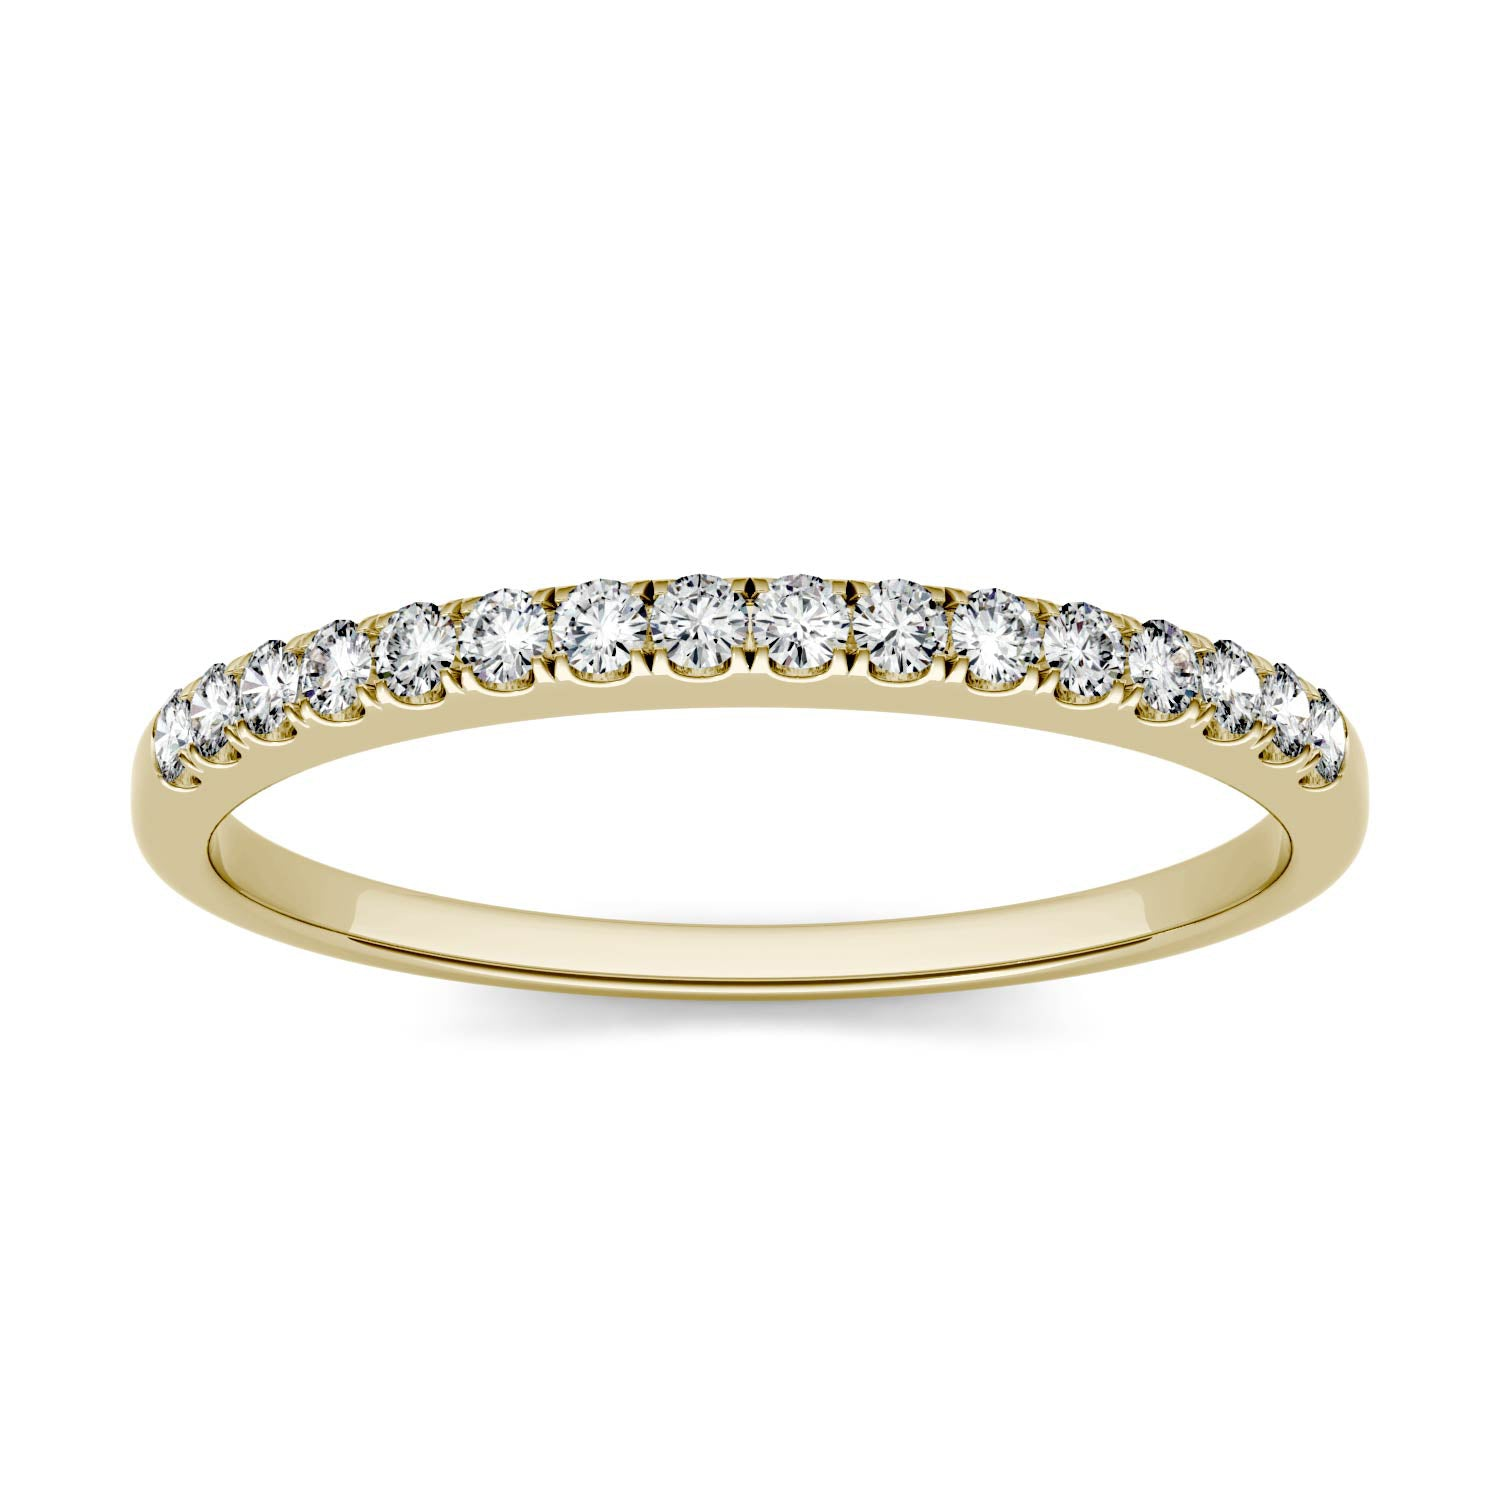 Charles & Colvard Moissanite Half Eternity Wedding Band in Yellow Gold-529469 - Jewelry by Johan